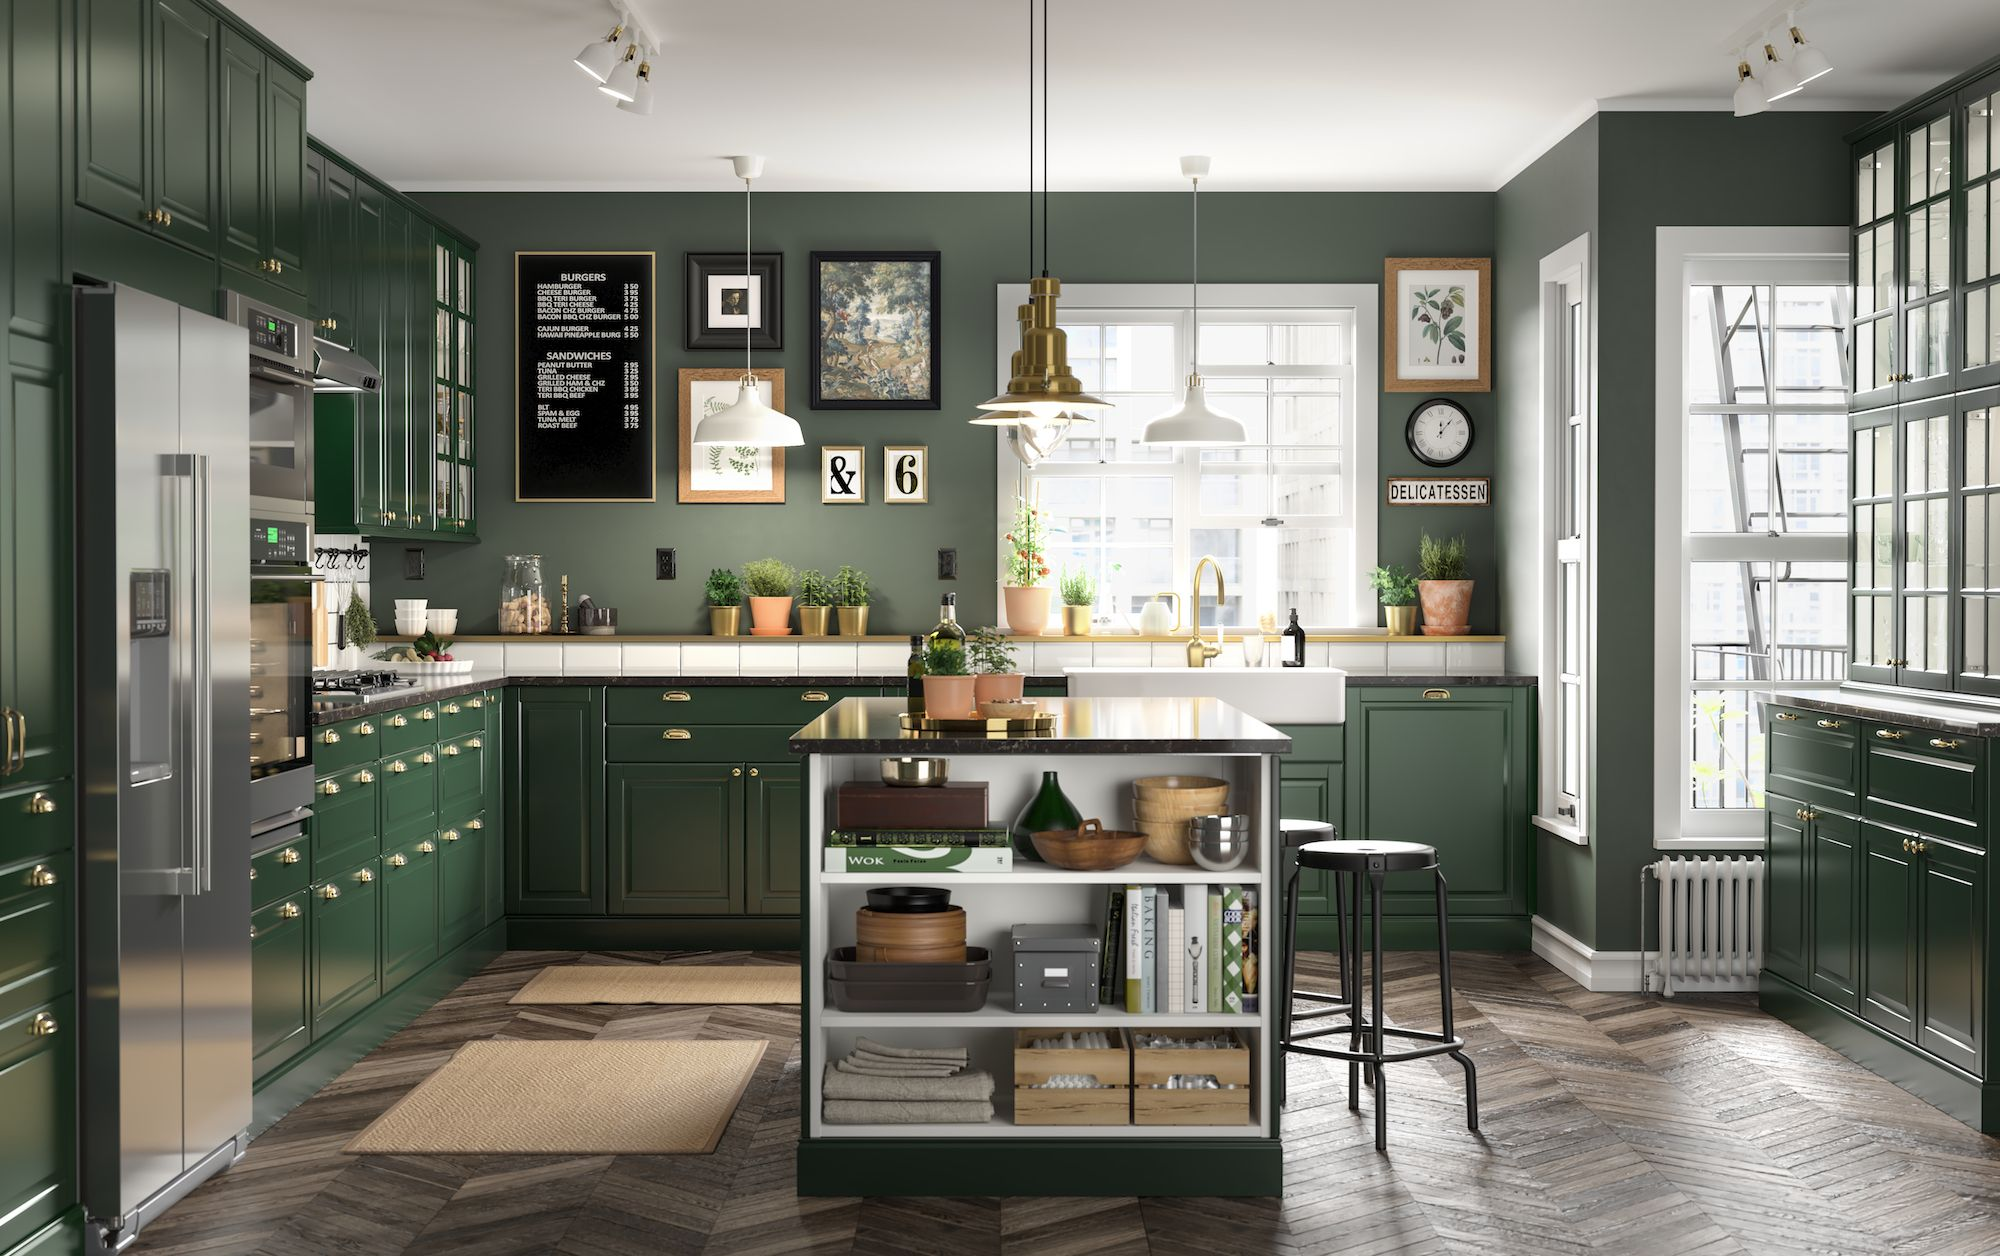 10 kitchen design questions answered